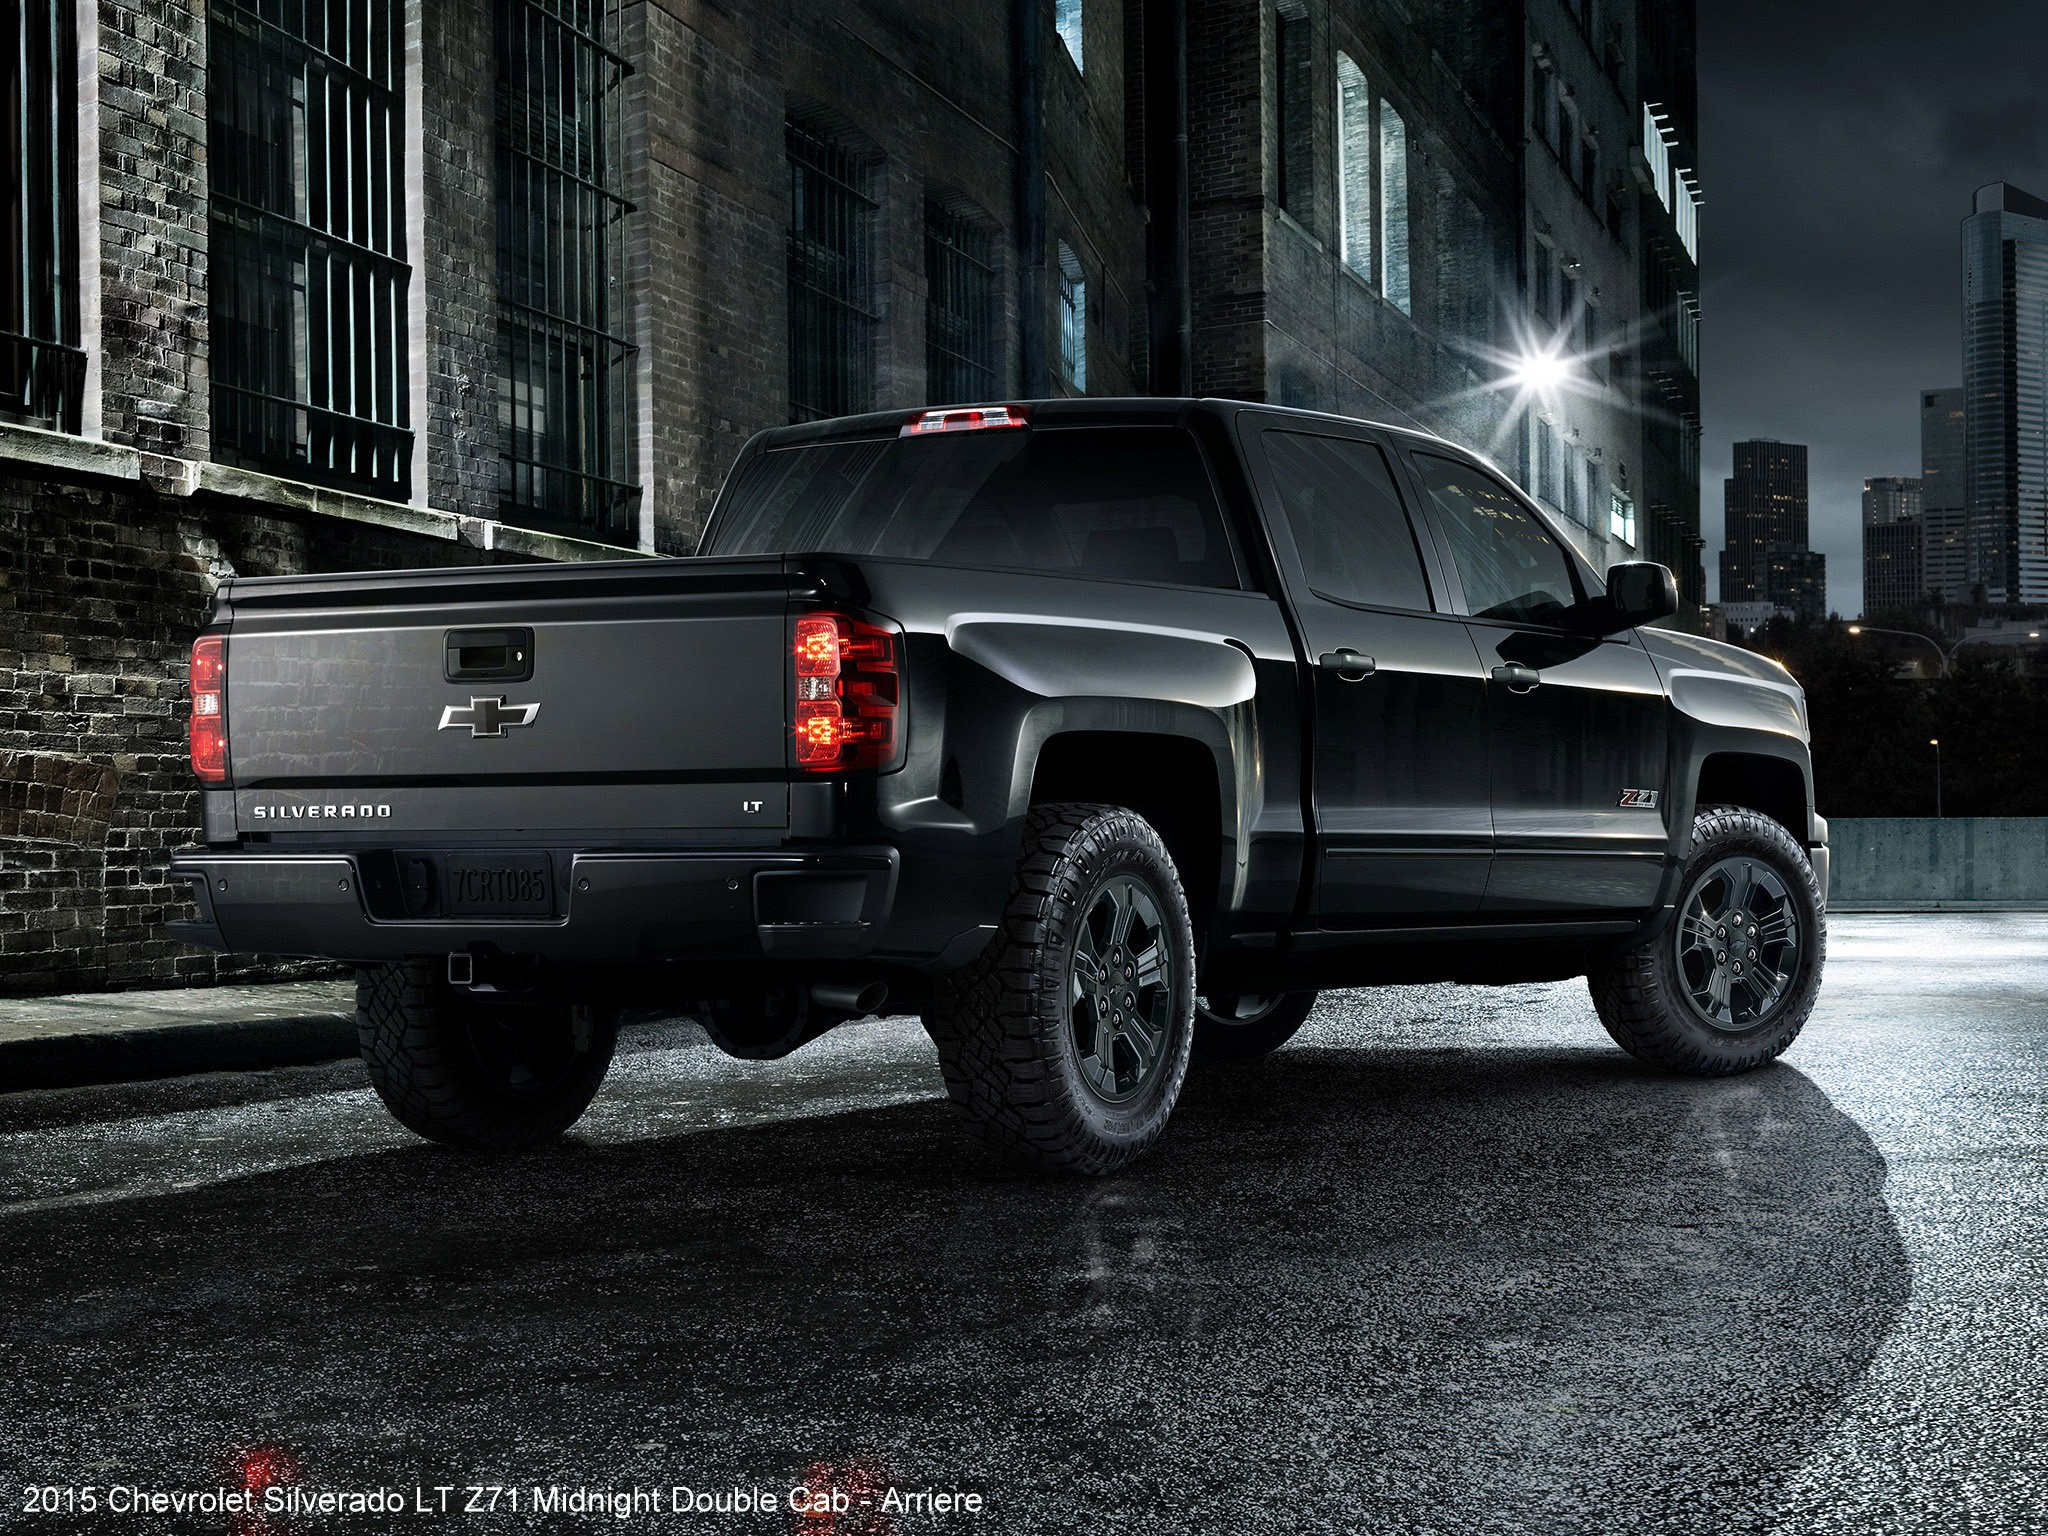 2015 Chevrolet Silverado LT Z71 Midnight Double Cab